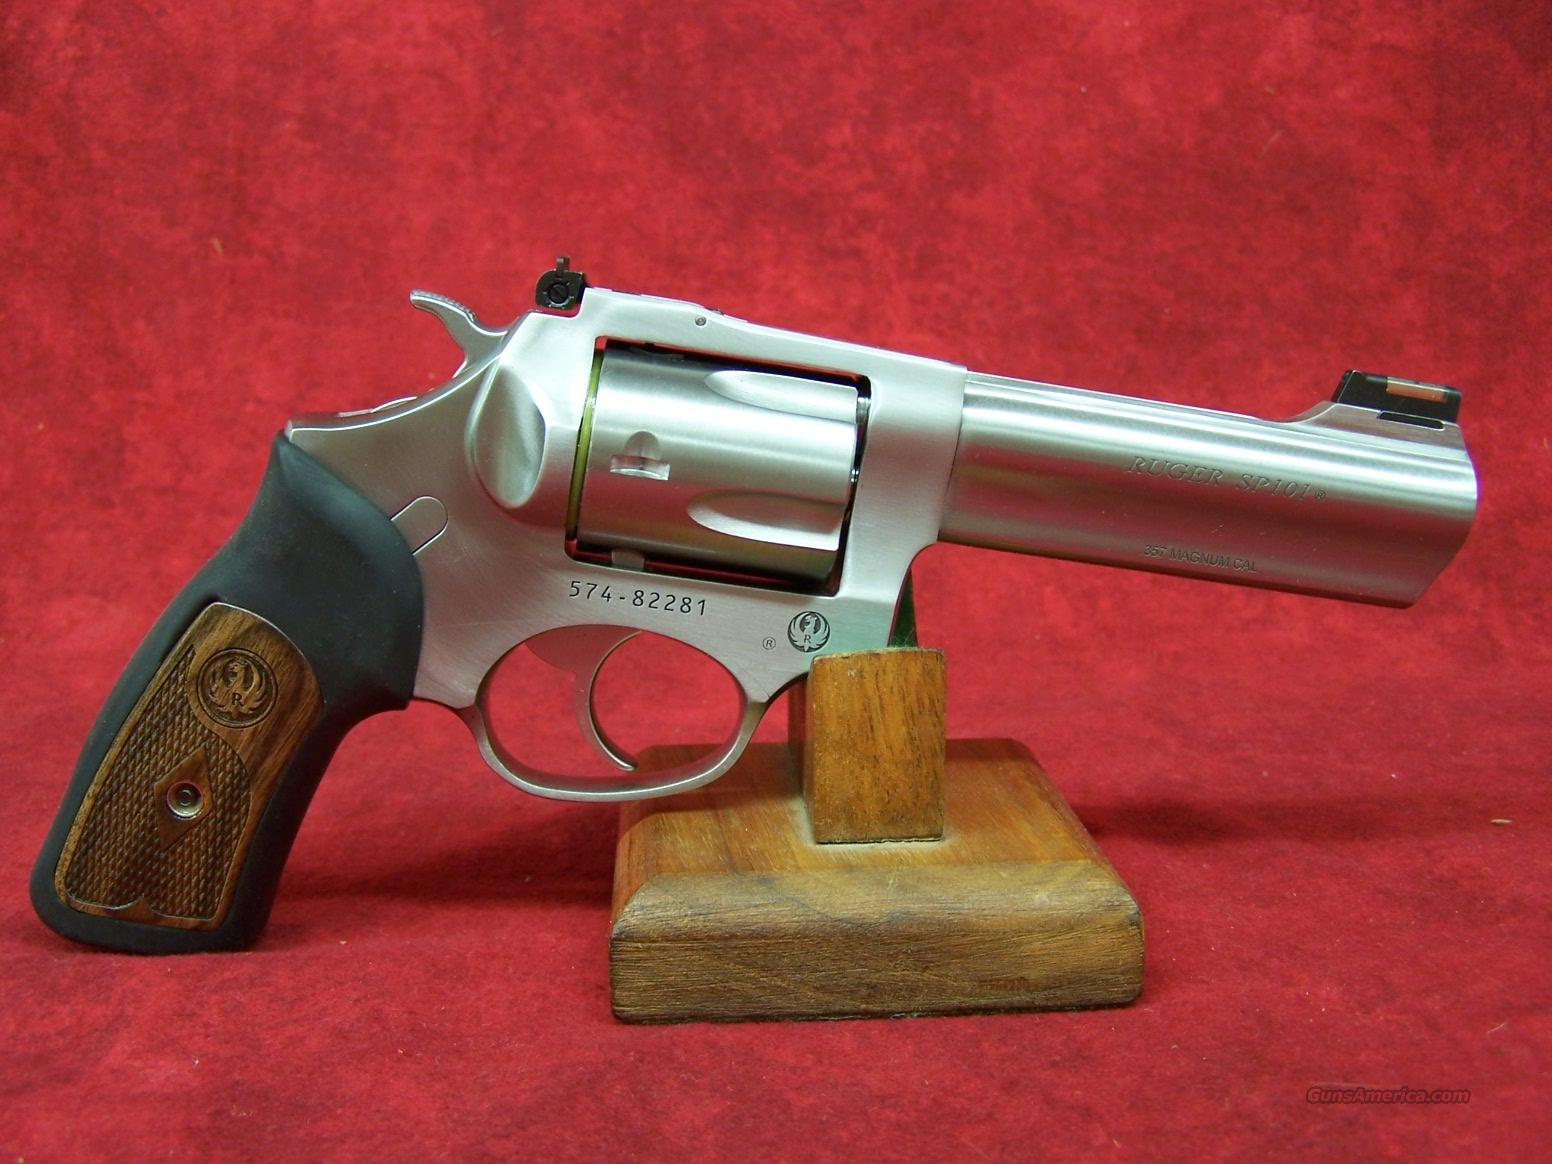 Ruger SP101 Revolver .357 mag 4.20 S/S FO Dbl Action 5 Shot(5771, KSP-341X)  Guns > Pistols > Ruger Double Action Revolver > SP101 Type